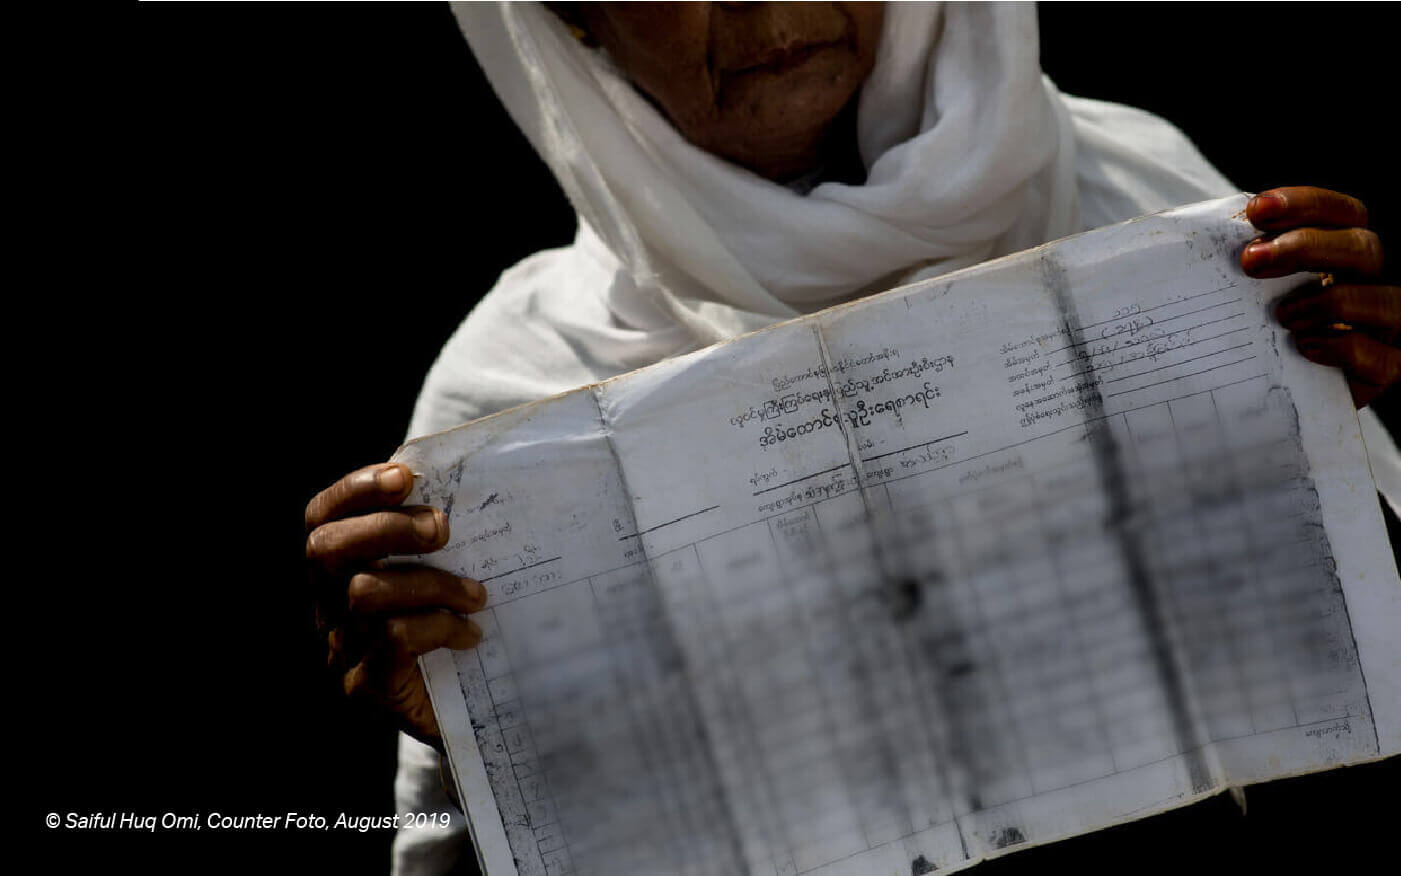 Myanmar's National Unity Government Recognizes Rights of Rohingya